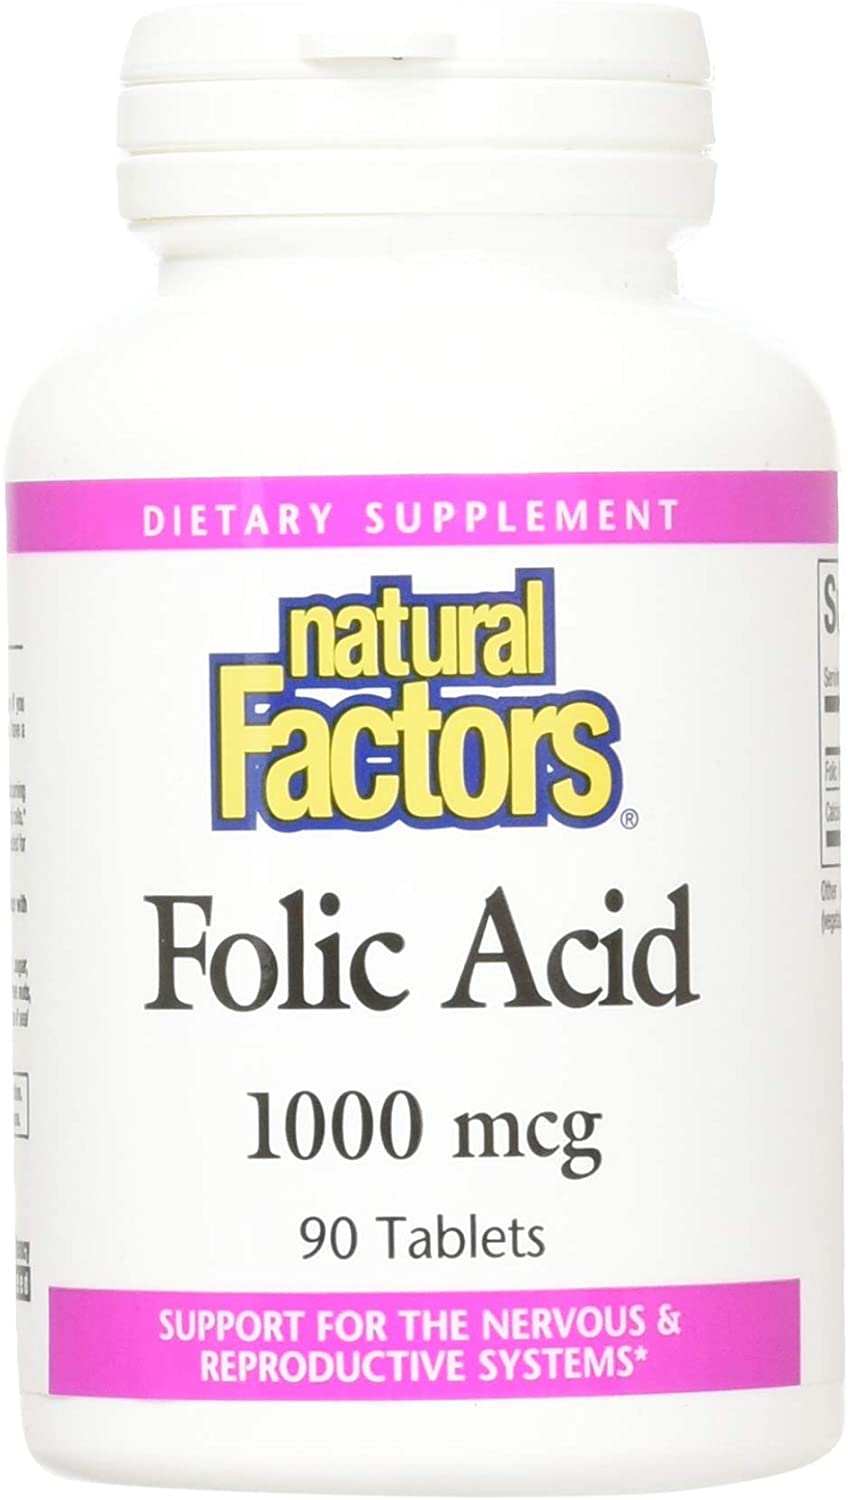 Natural Factors, Folic Acid 1000 mcg, Supports a Healthy Pregnancy, Nervous System, Brain and Mental Health , 90 tablets (90 servings)